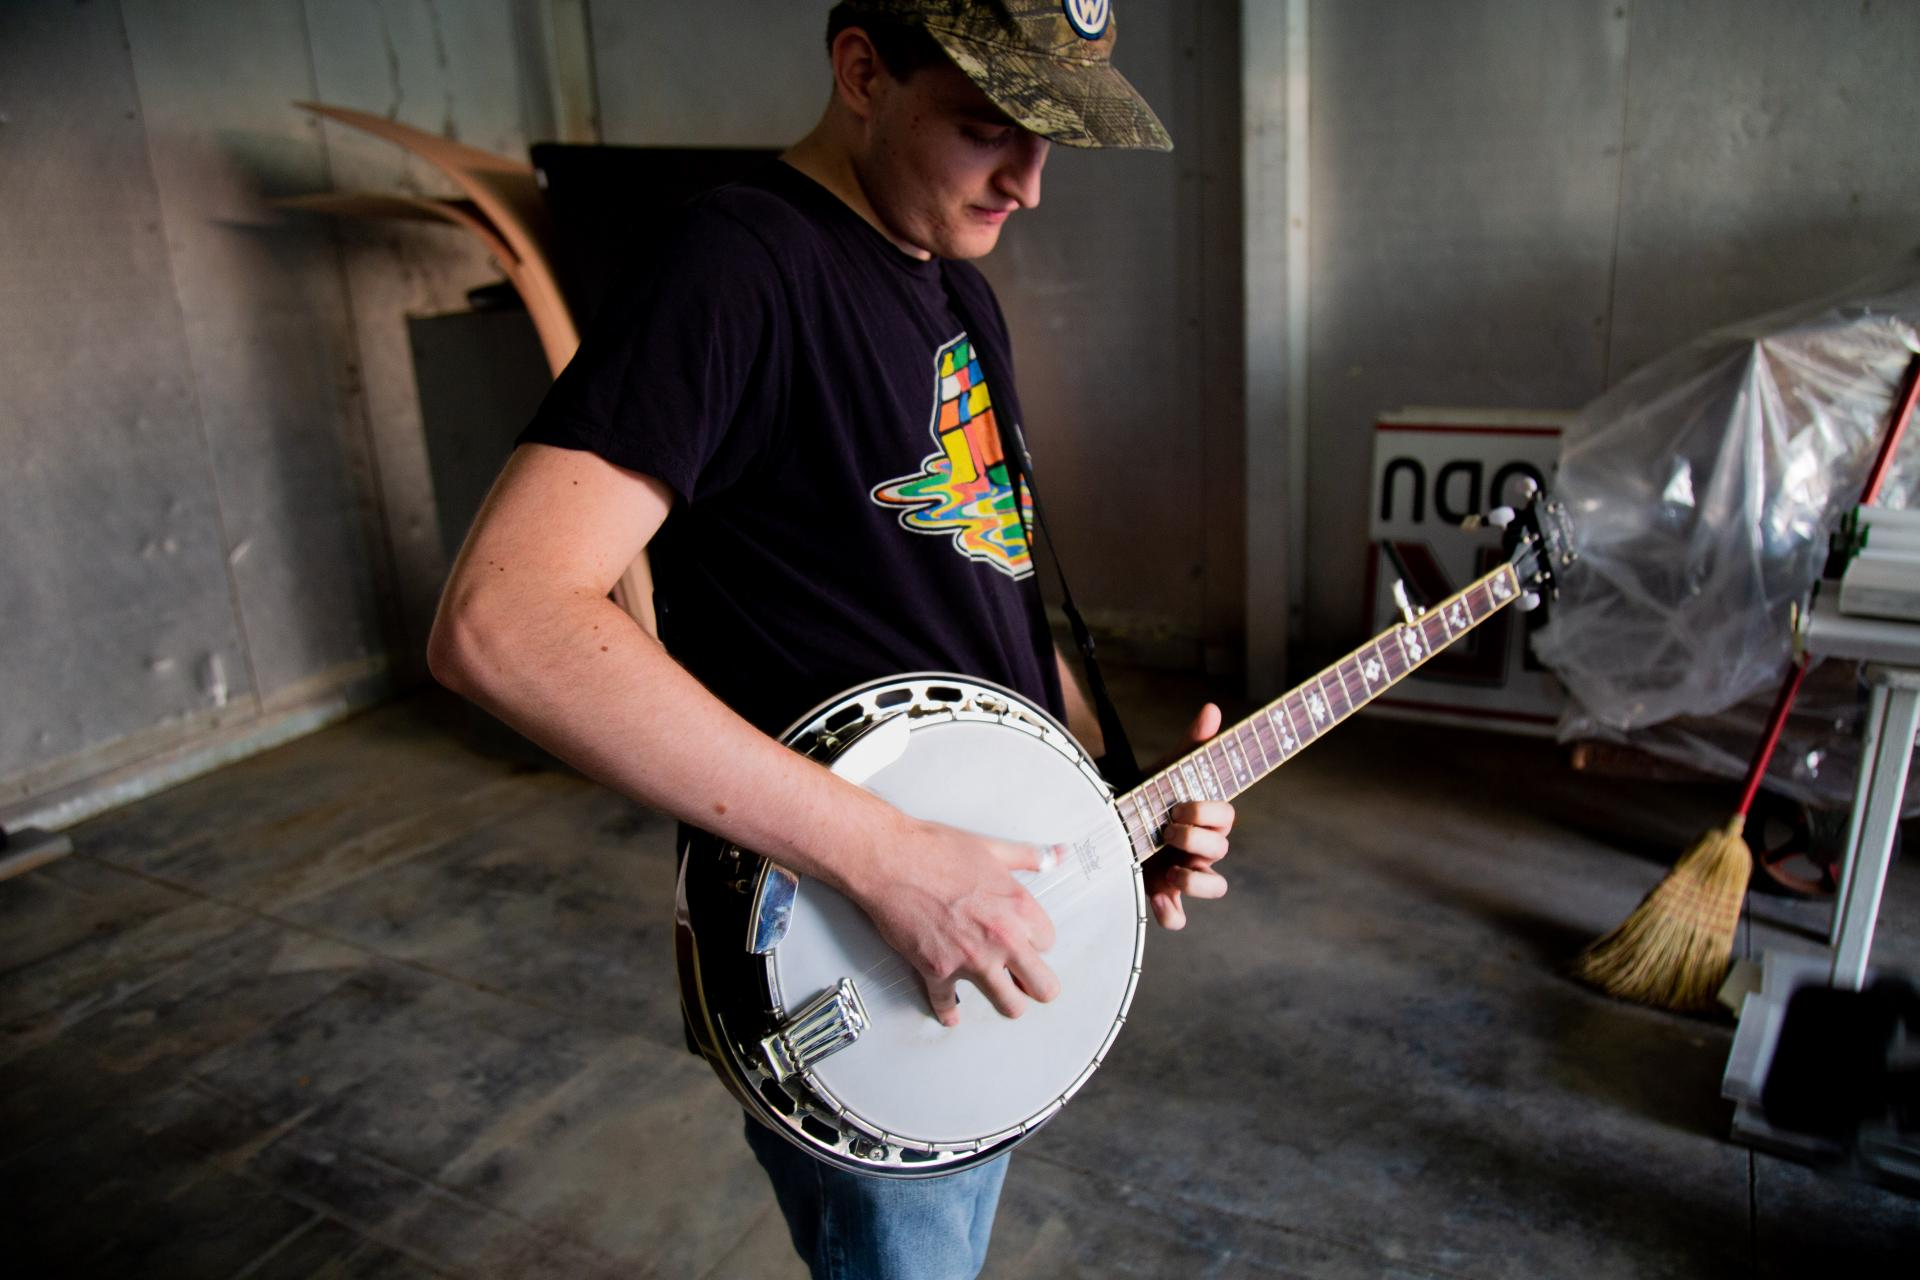 A banjo player showing off his chops off-stage